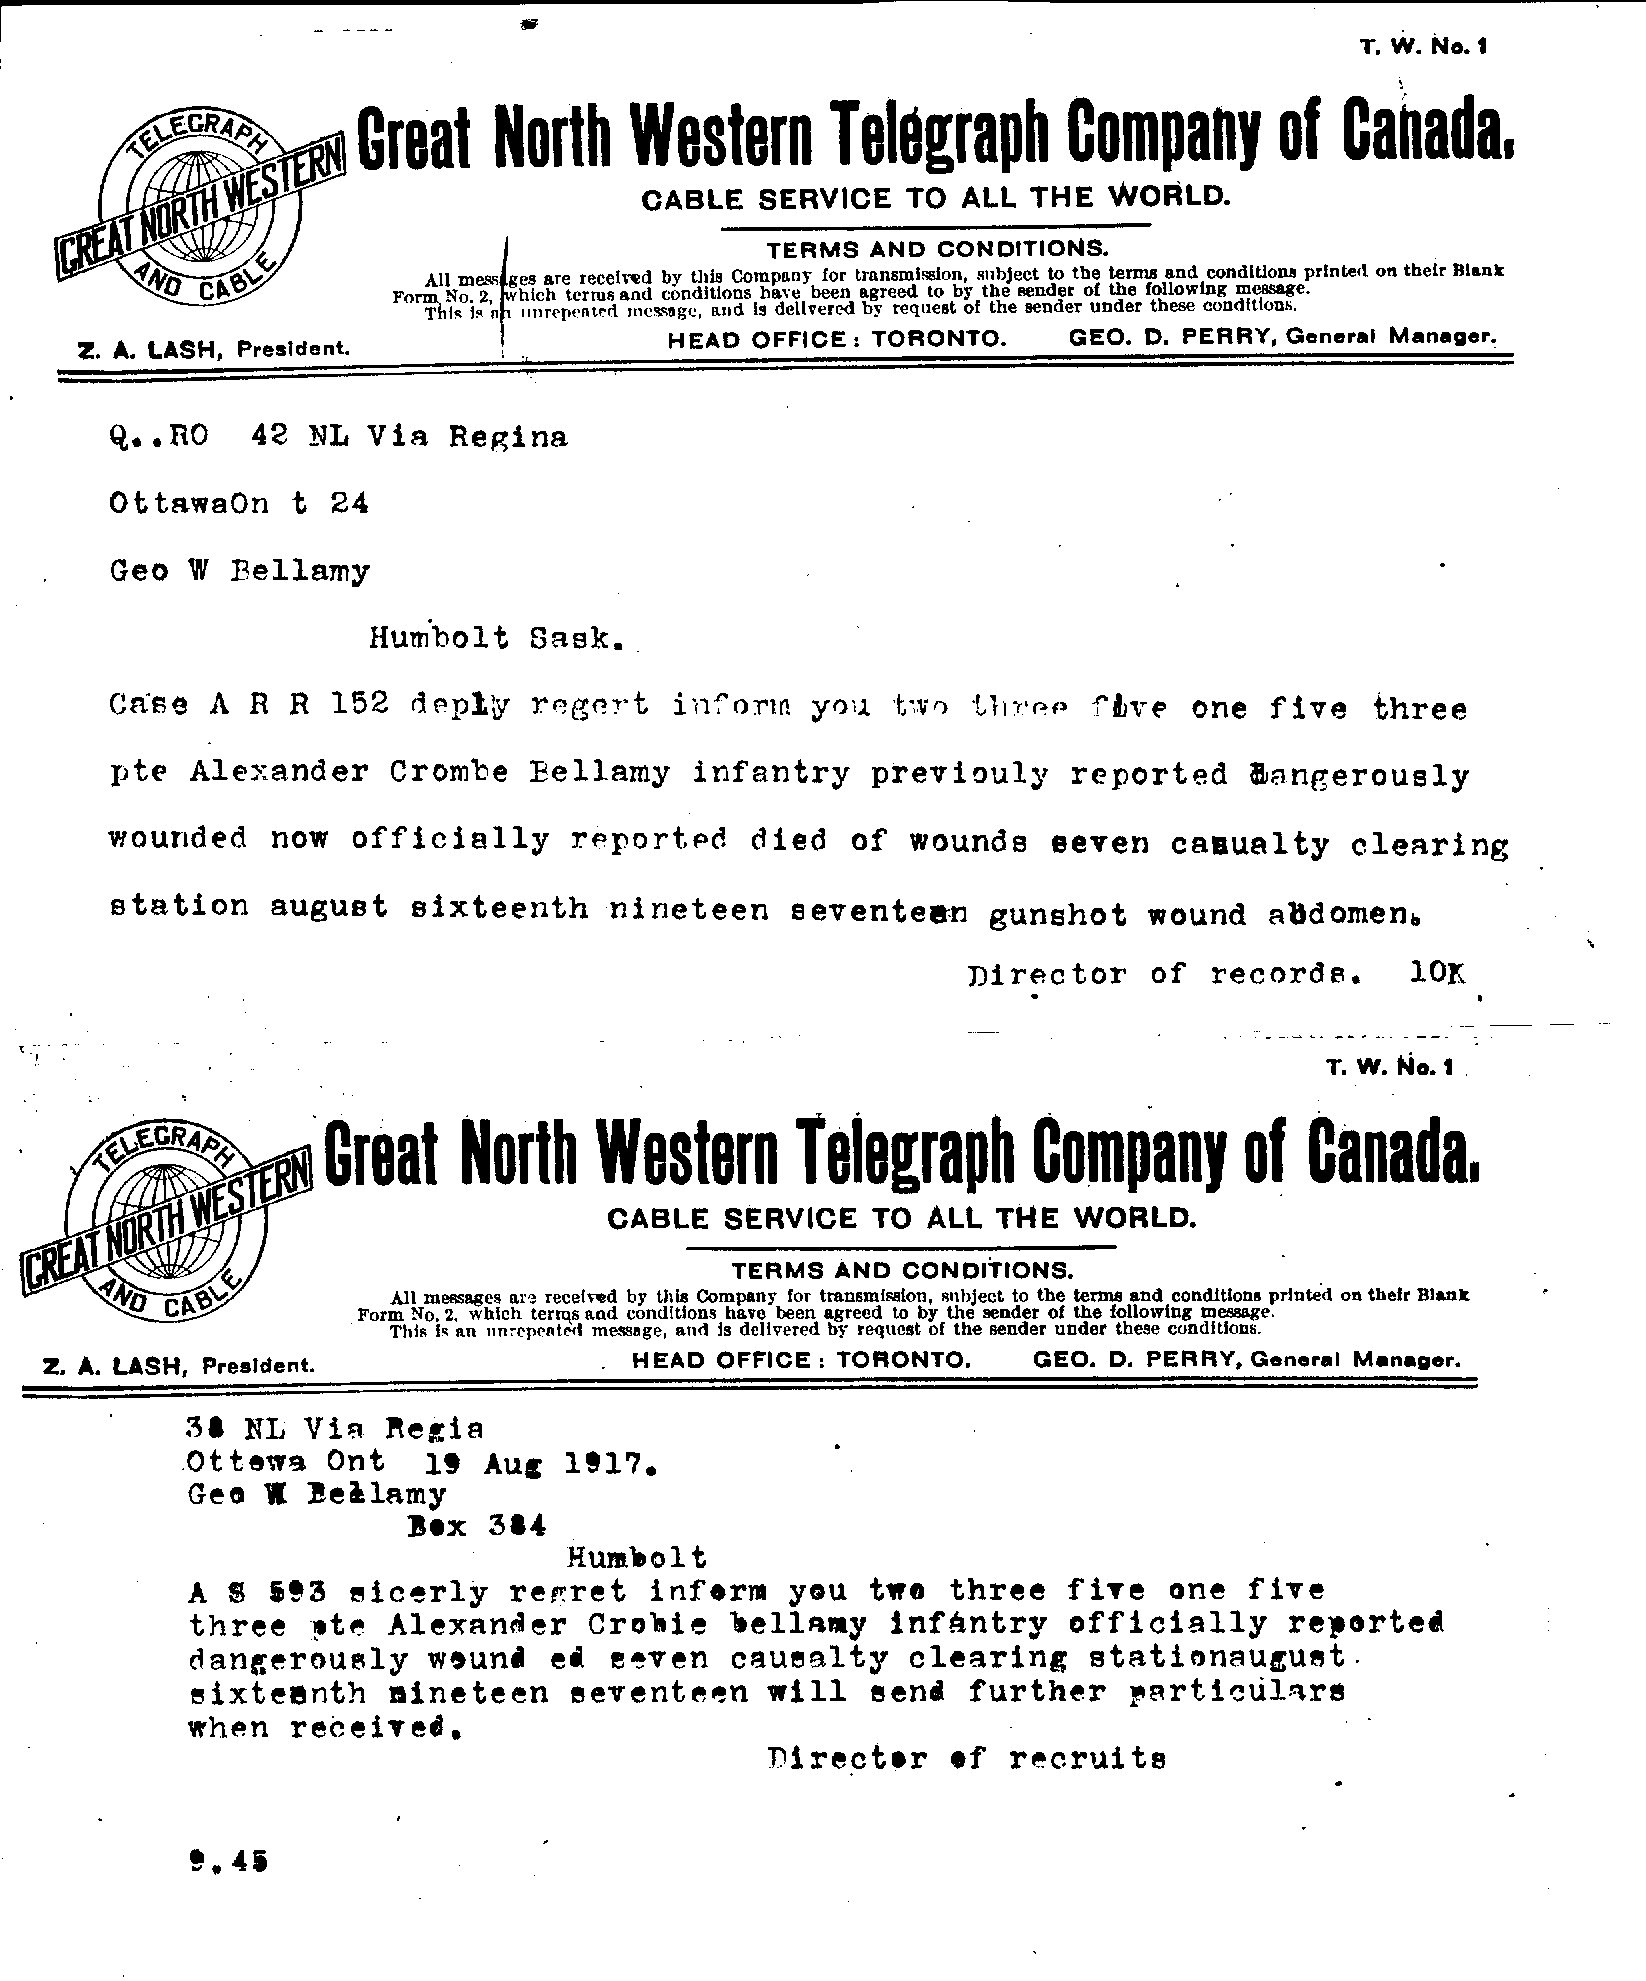 Telegram– Copies of telegrams received by Private Alexander Crombie Bellamy's family, 1) notifying them he had been wounded; 2) notifying them he had died from his wounds.